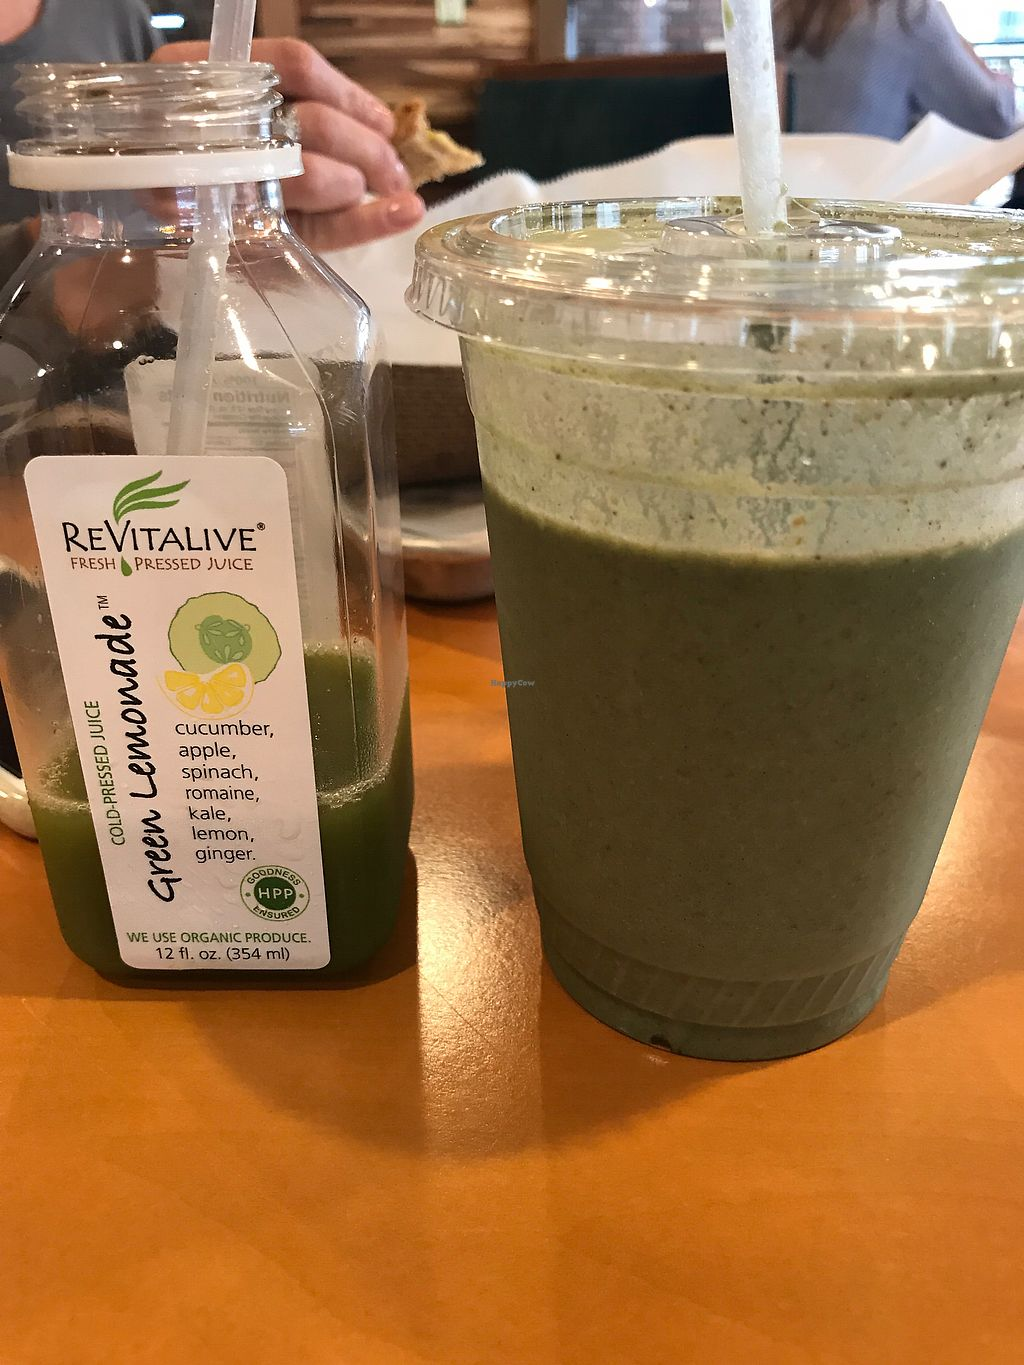 """Photo of Revitalive Cafe and Juice Bar  by <a href=""""/members/profile/BRabbit417"""">BRabbit417</a> <br/>ReVitalive...absolutely delicious!!  <br/> October 25, 2017  - <a href='/contact/abuse/image/95704/318796'>Report</a>"""